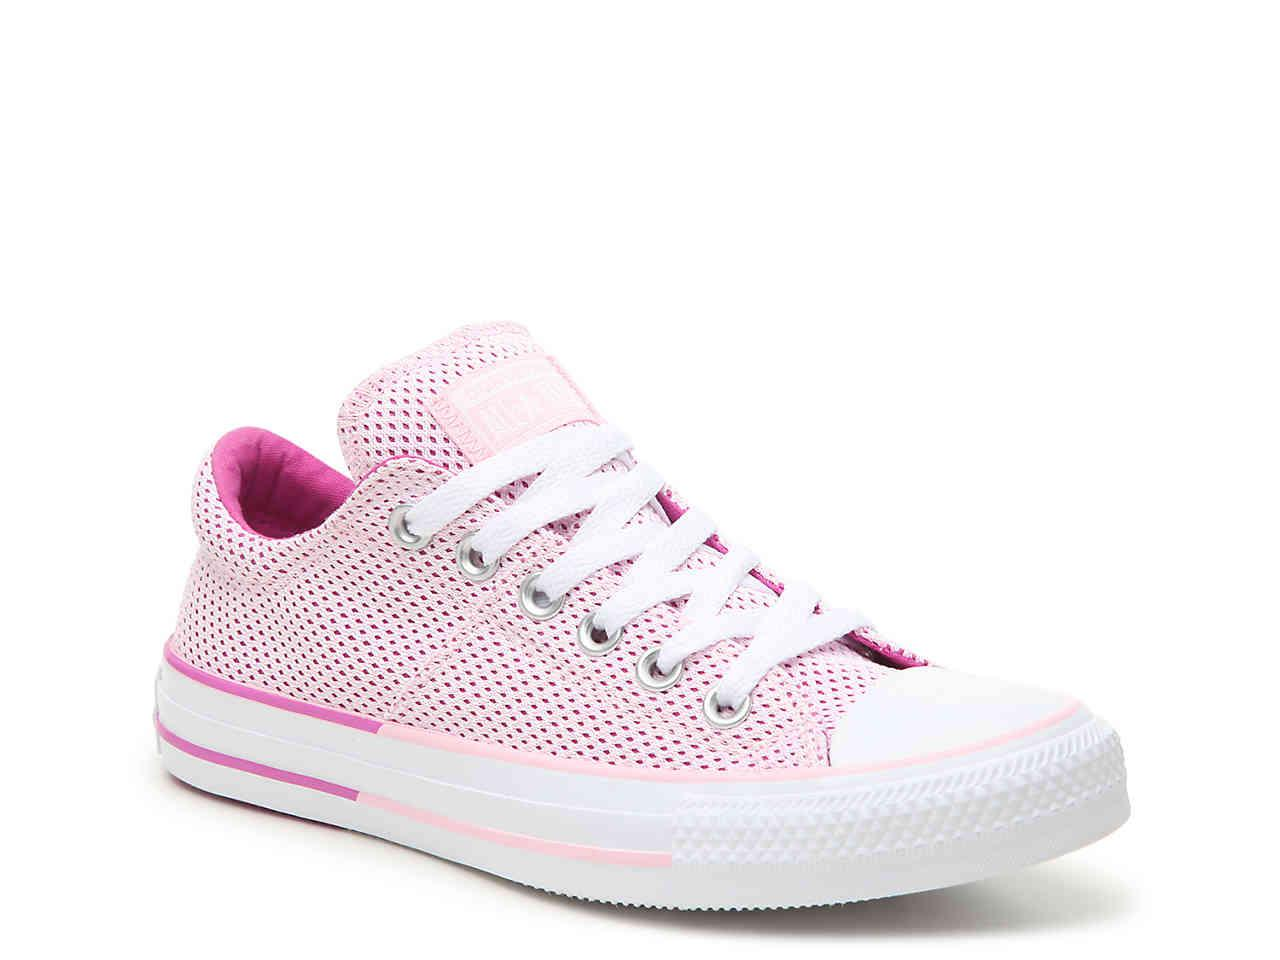 2c01a71a66db Lyst - Converse Chuck Taylor All Star Madison Sneaker in Pink